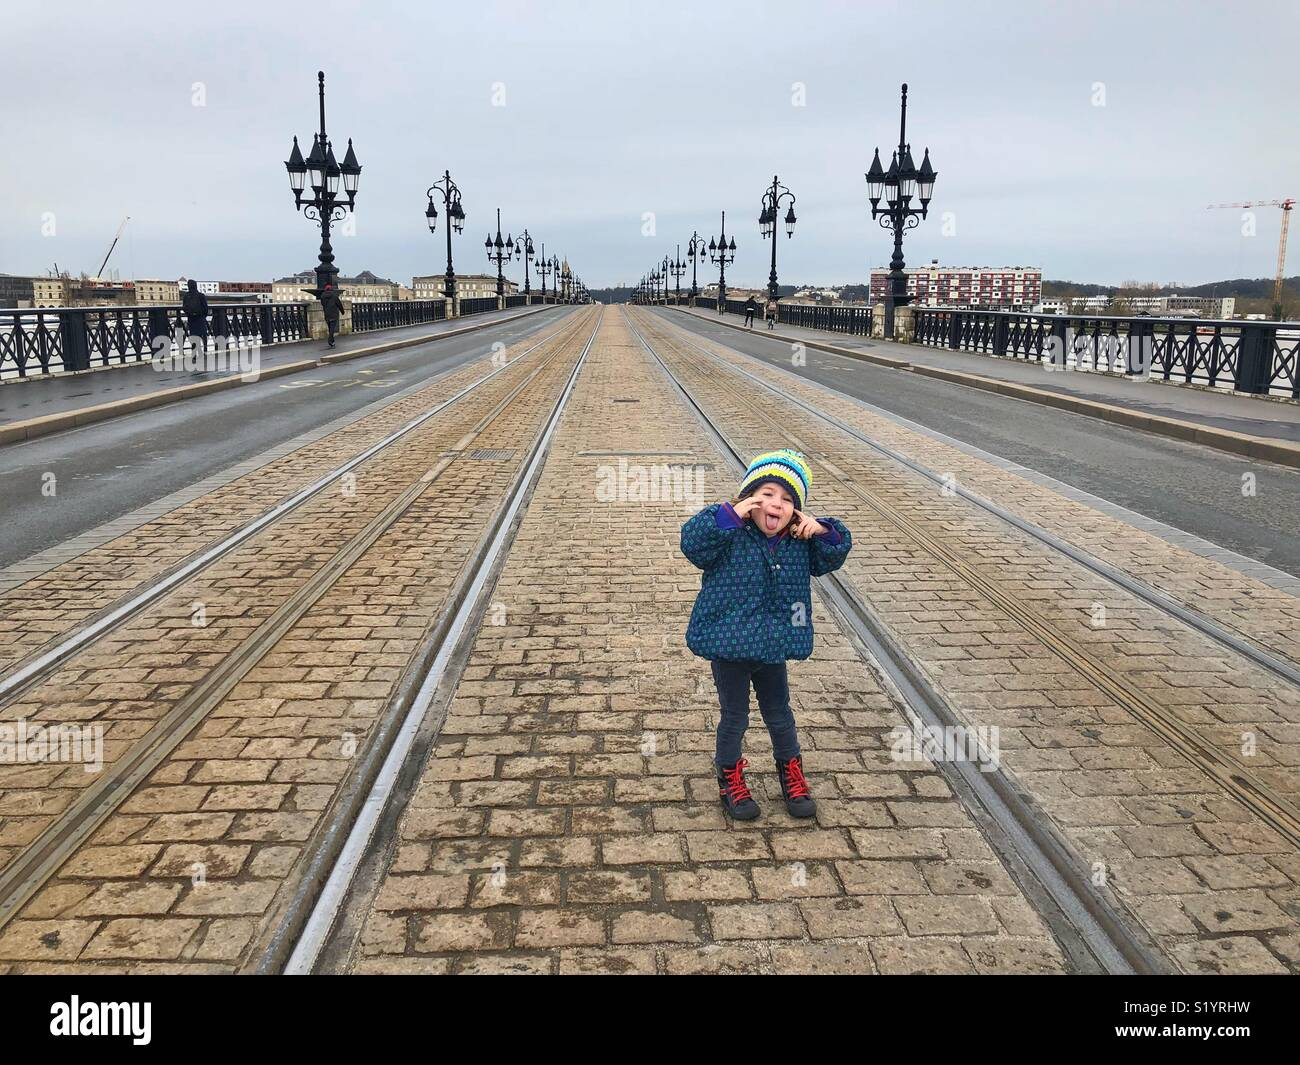 Funny moment Bordeaux France - Stock Image